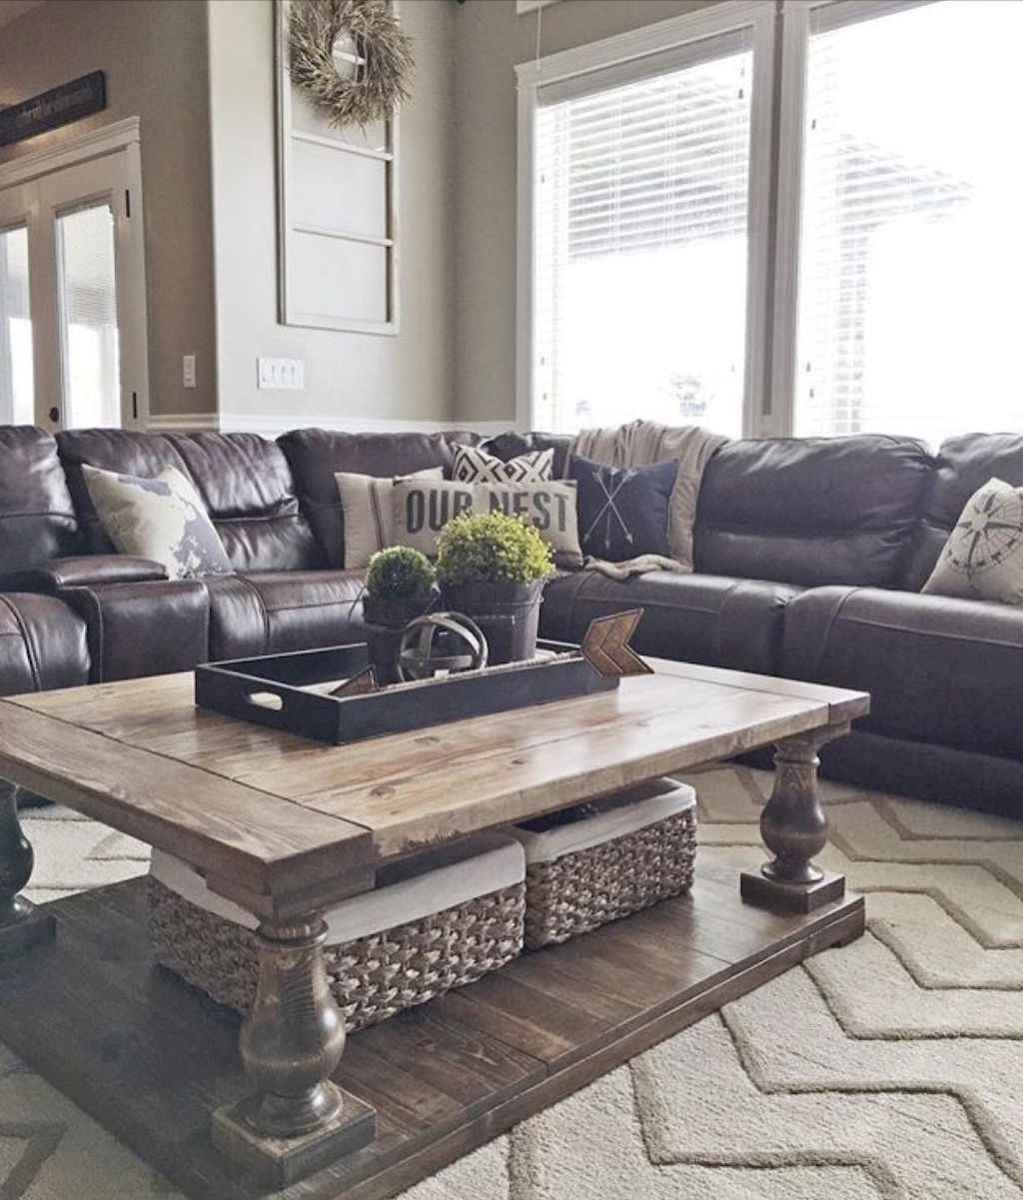 50 cool apartment coffee table ideas (15)